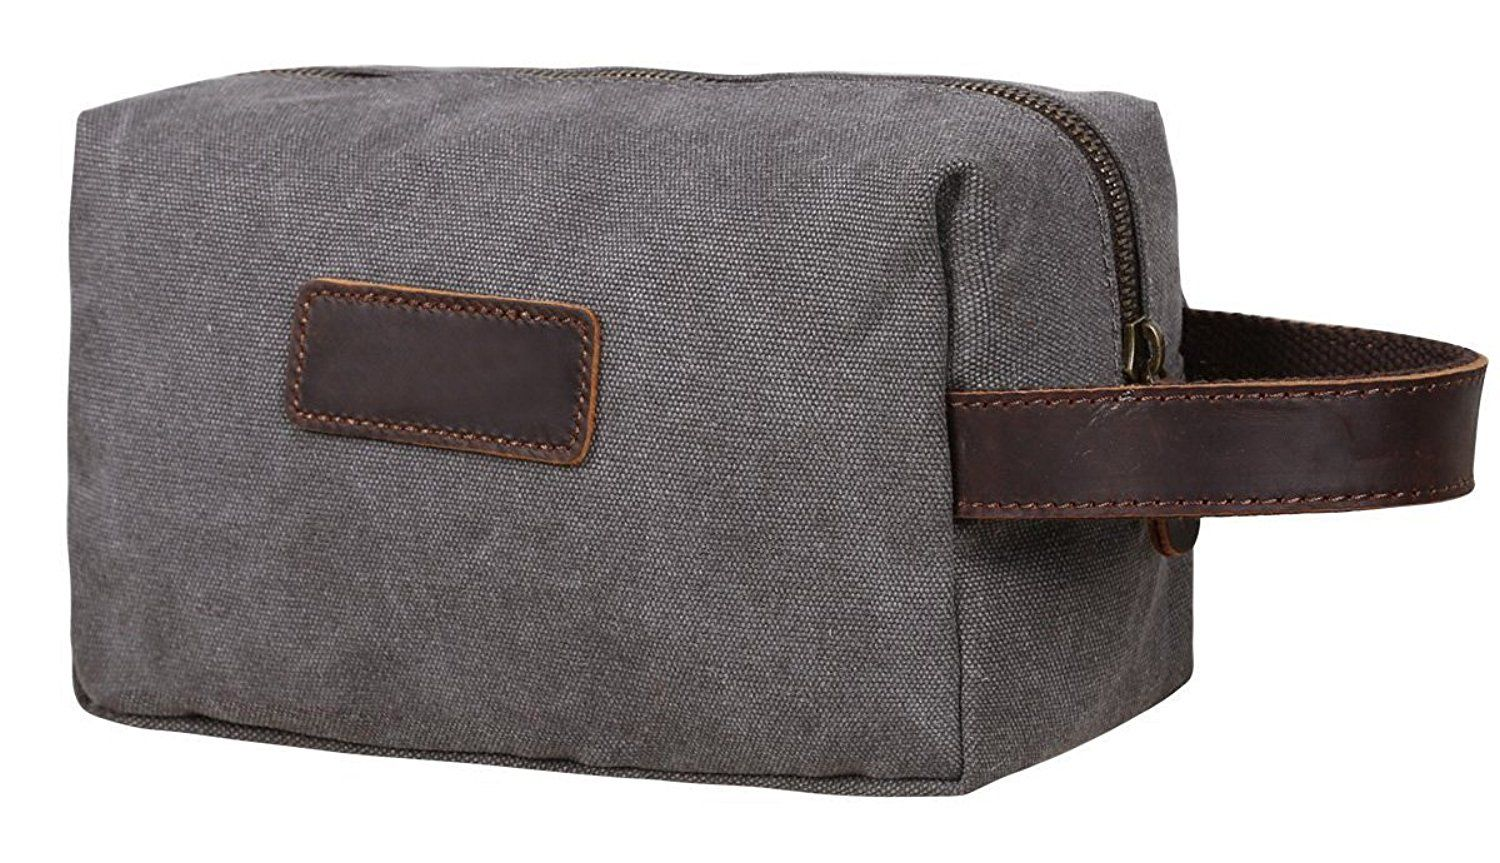 £29.05  Canvas Travel Toiletry Organizer Shaving Dopp Kit Cosmetic Makeup  Bagno.204 Click competitive price a32a8 ... 62d5740fed